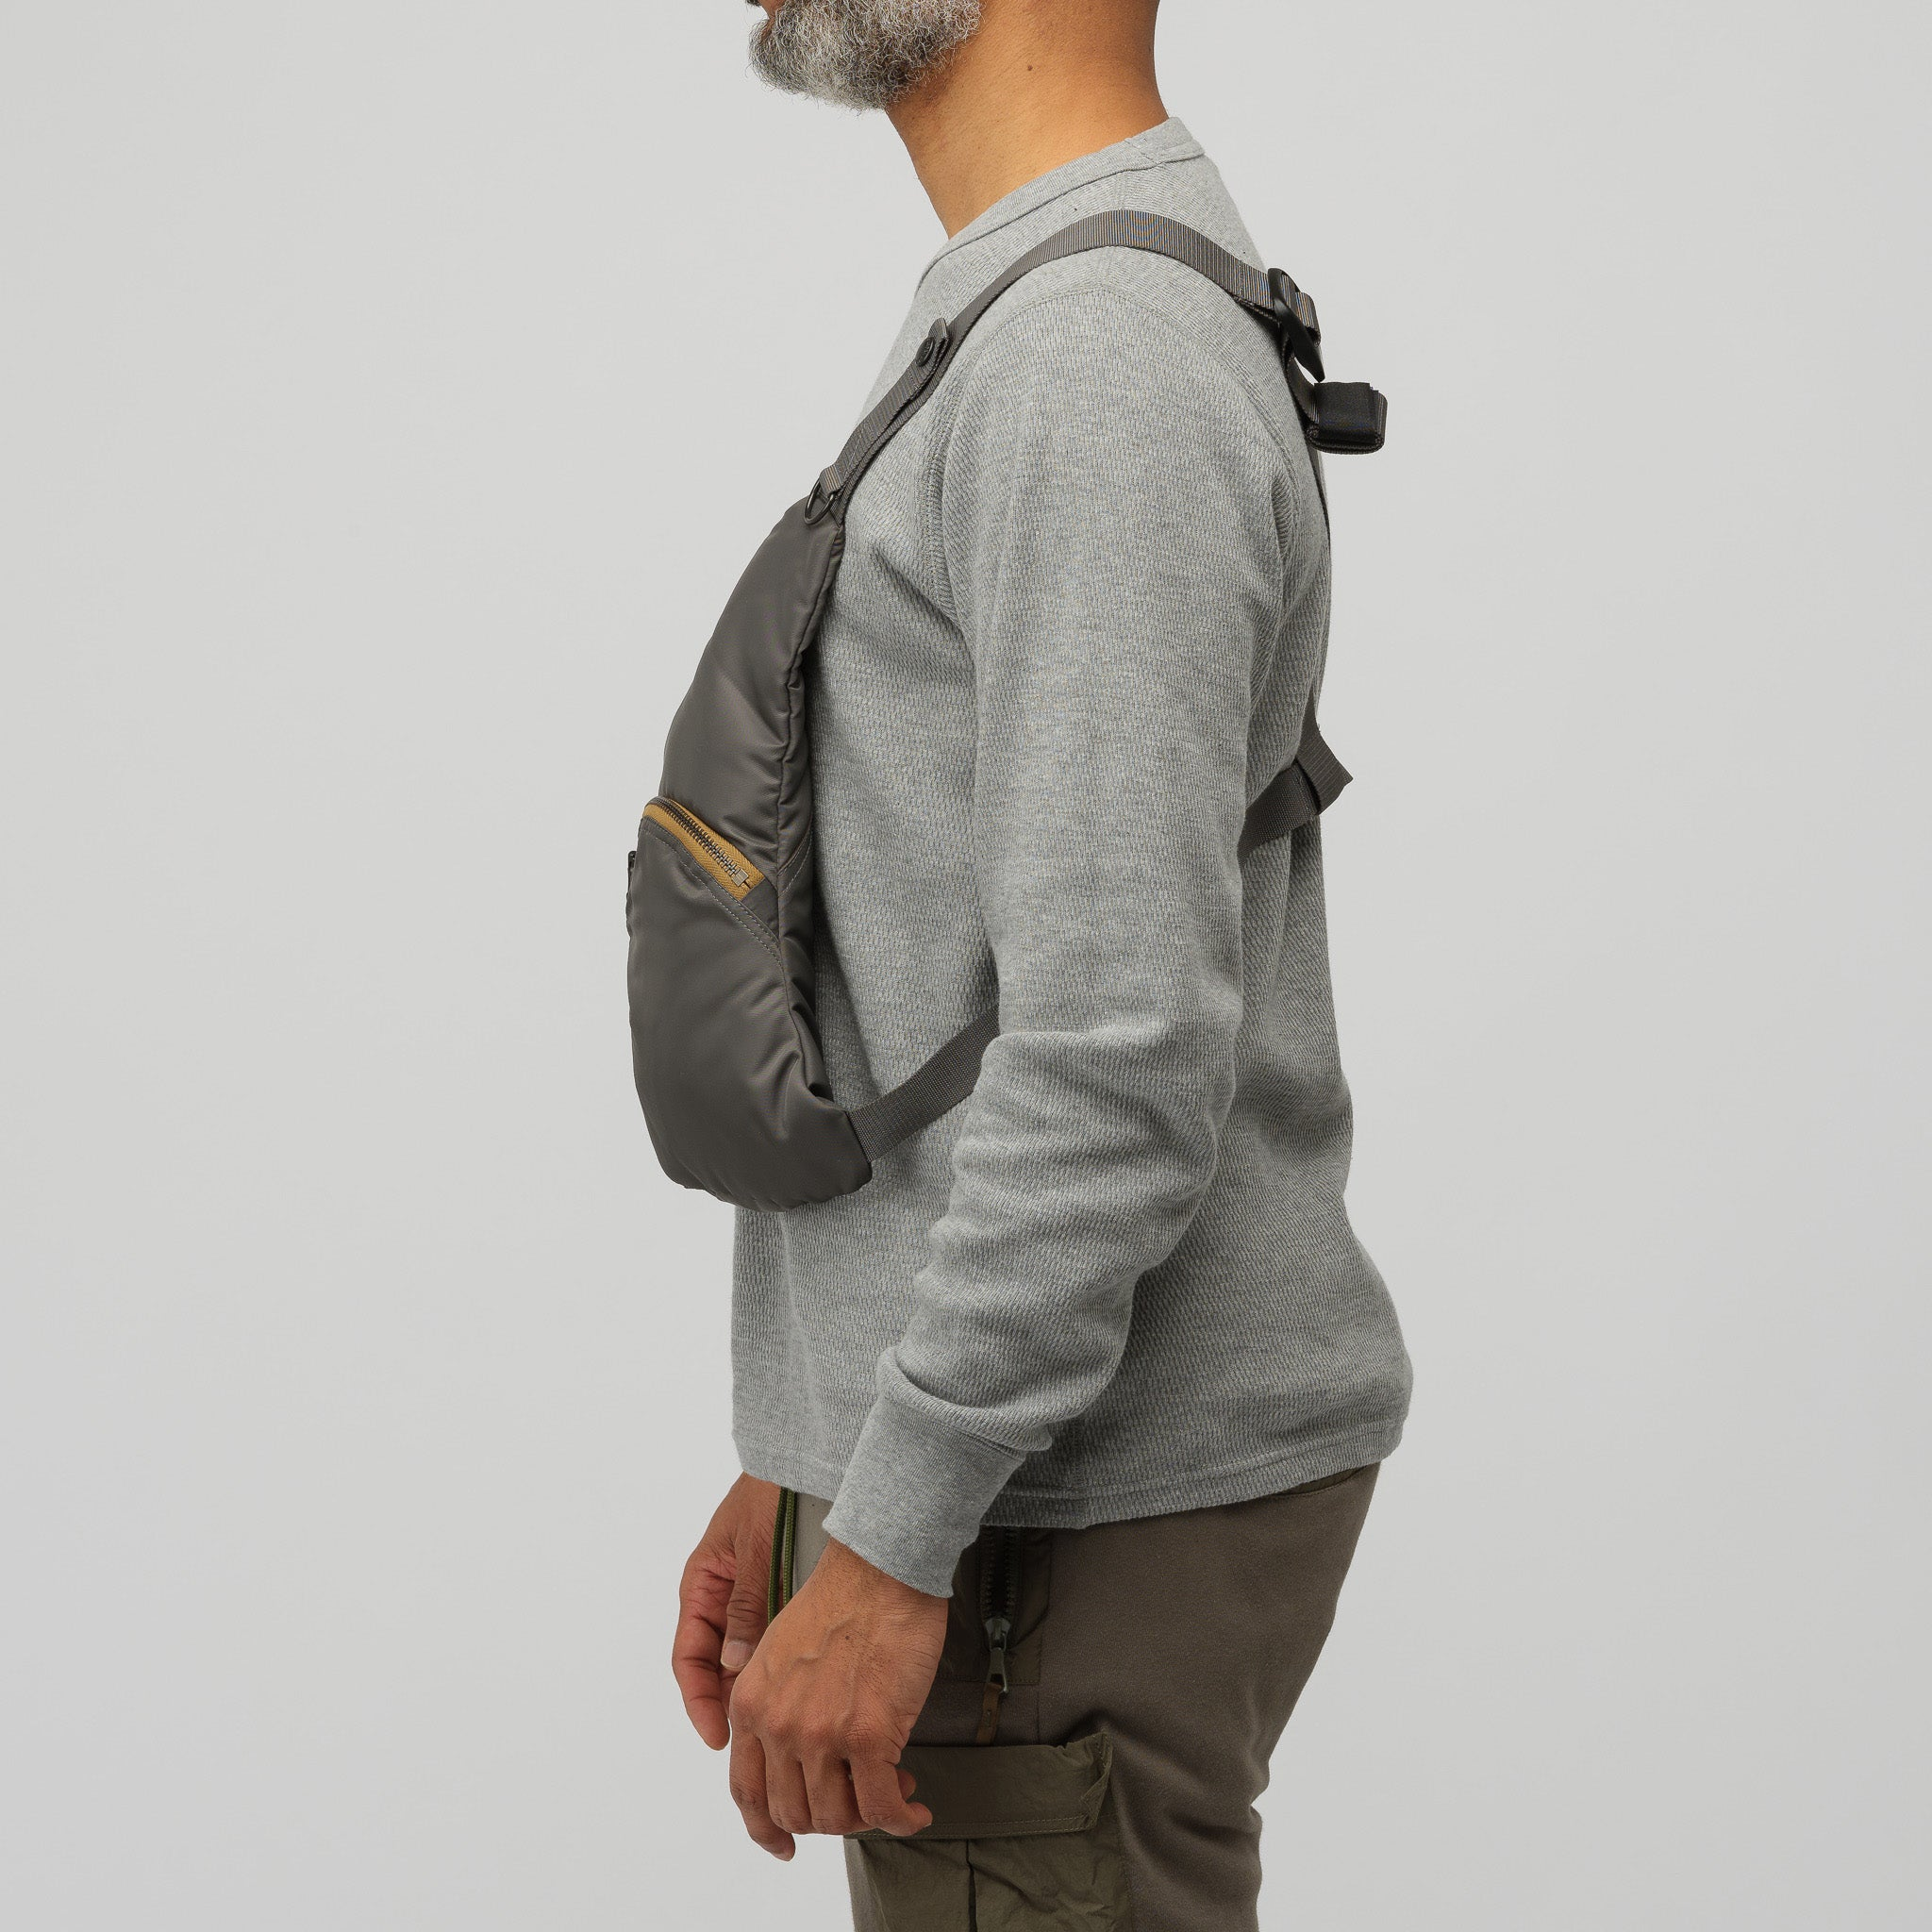 Sling Bag in Khaki